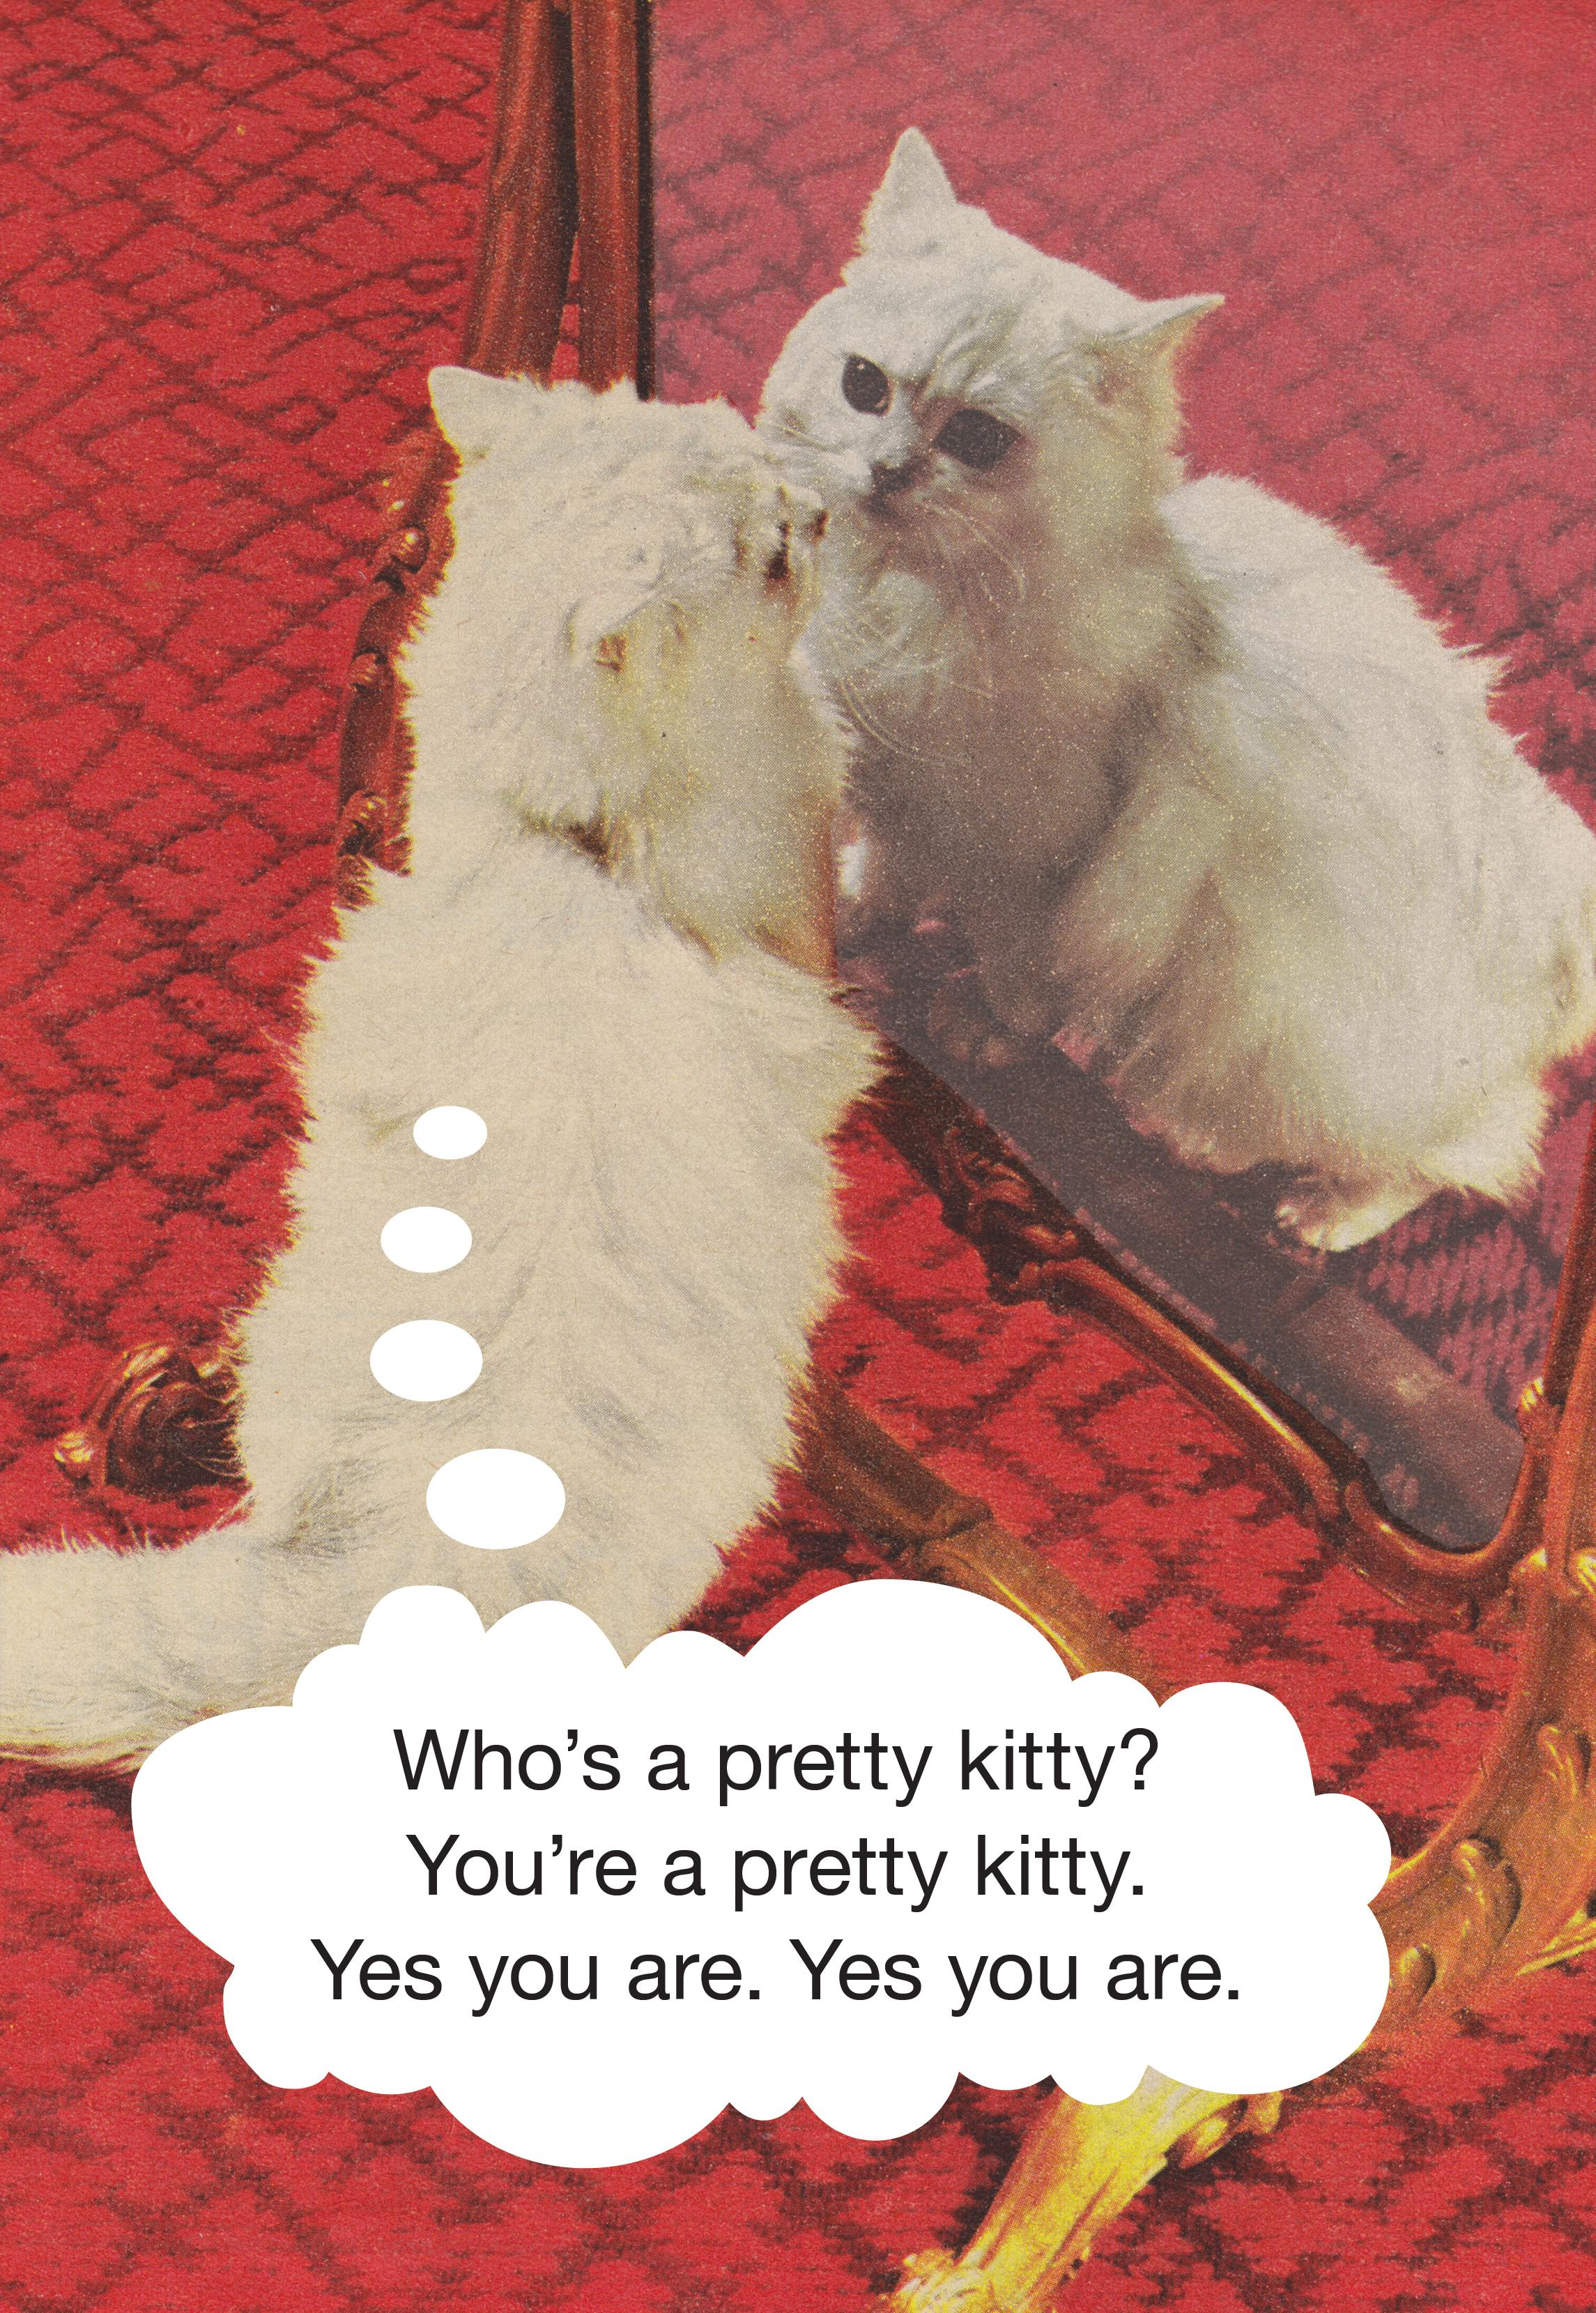 Who's a pretty kitty? You're a pretty kitty. Yes you are.